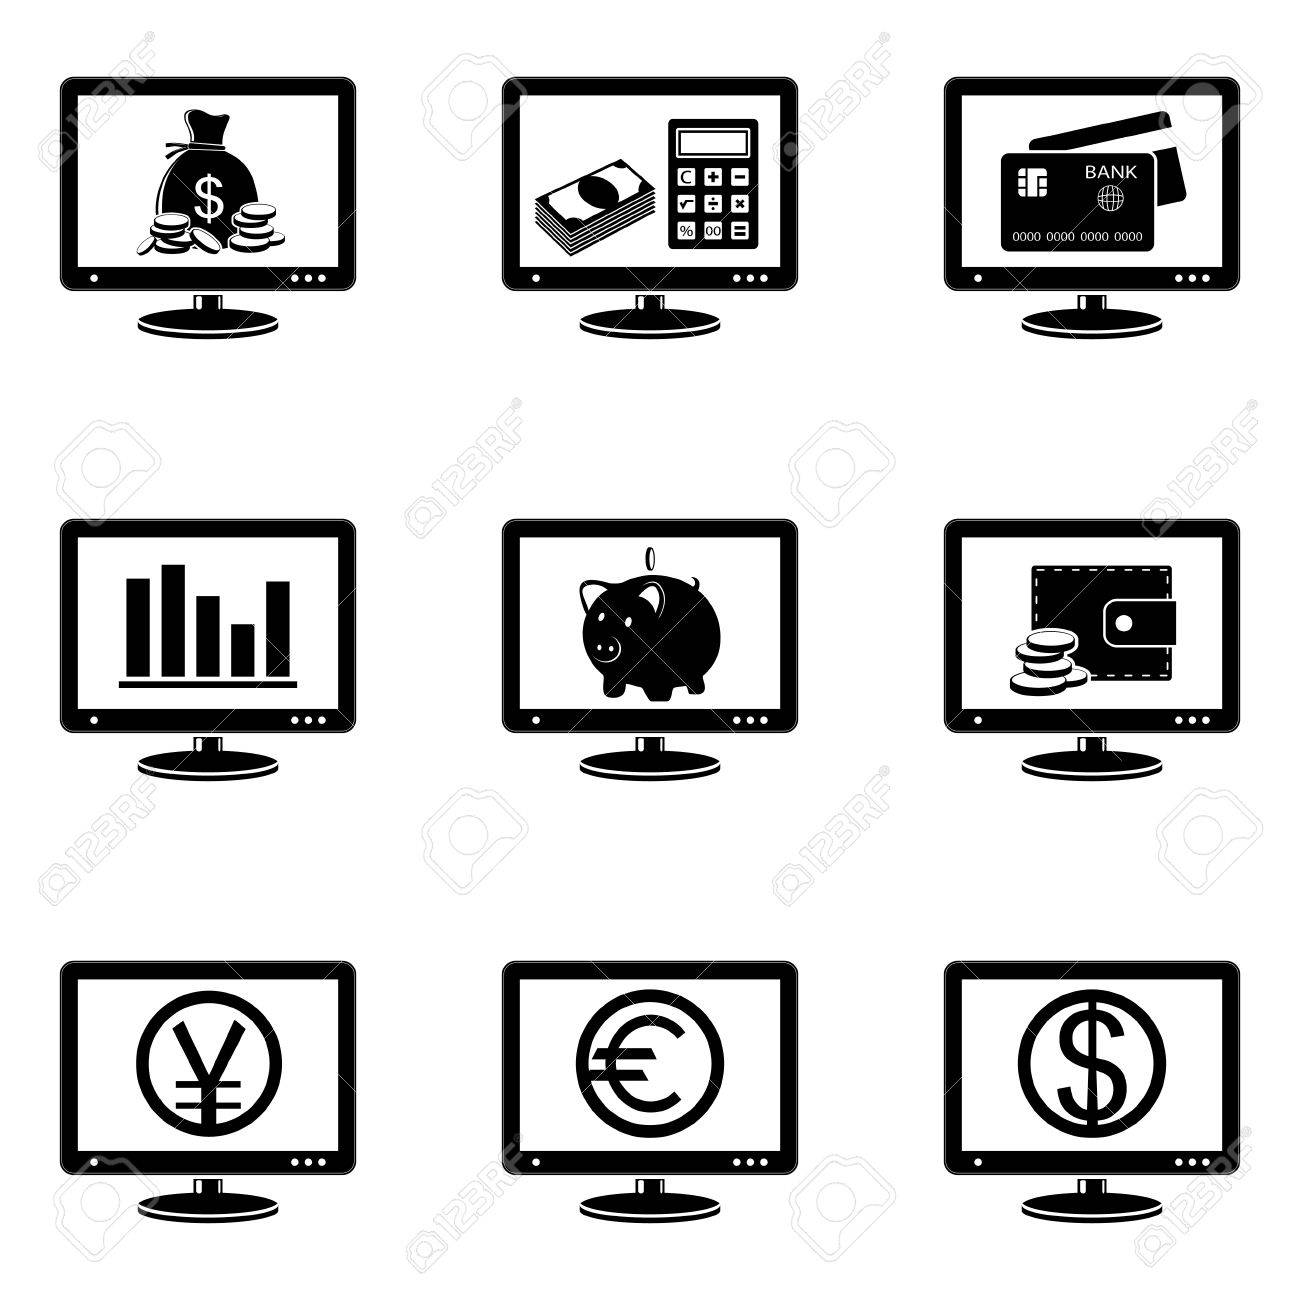 Monitor icons with finance signs on screen Stock Vector - 26330114